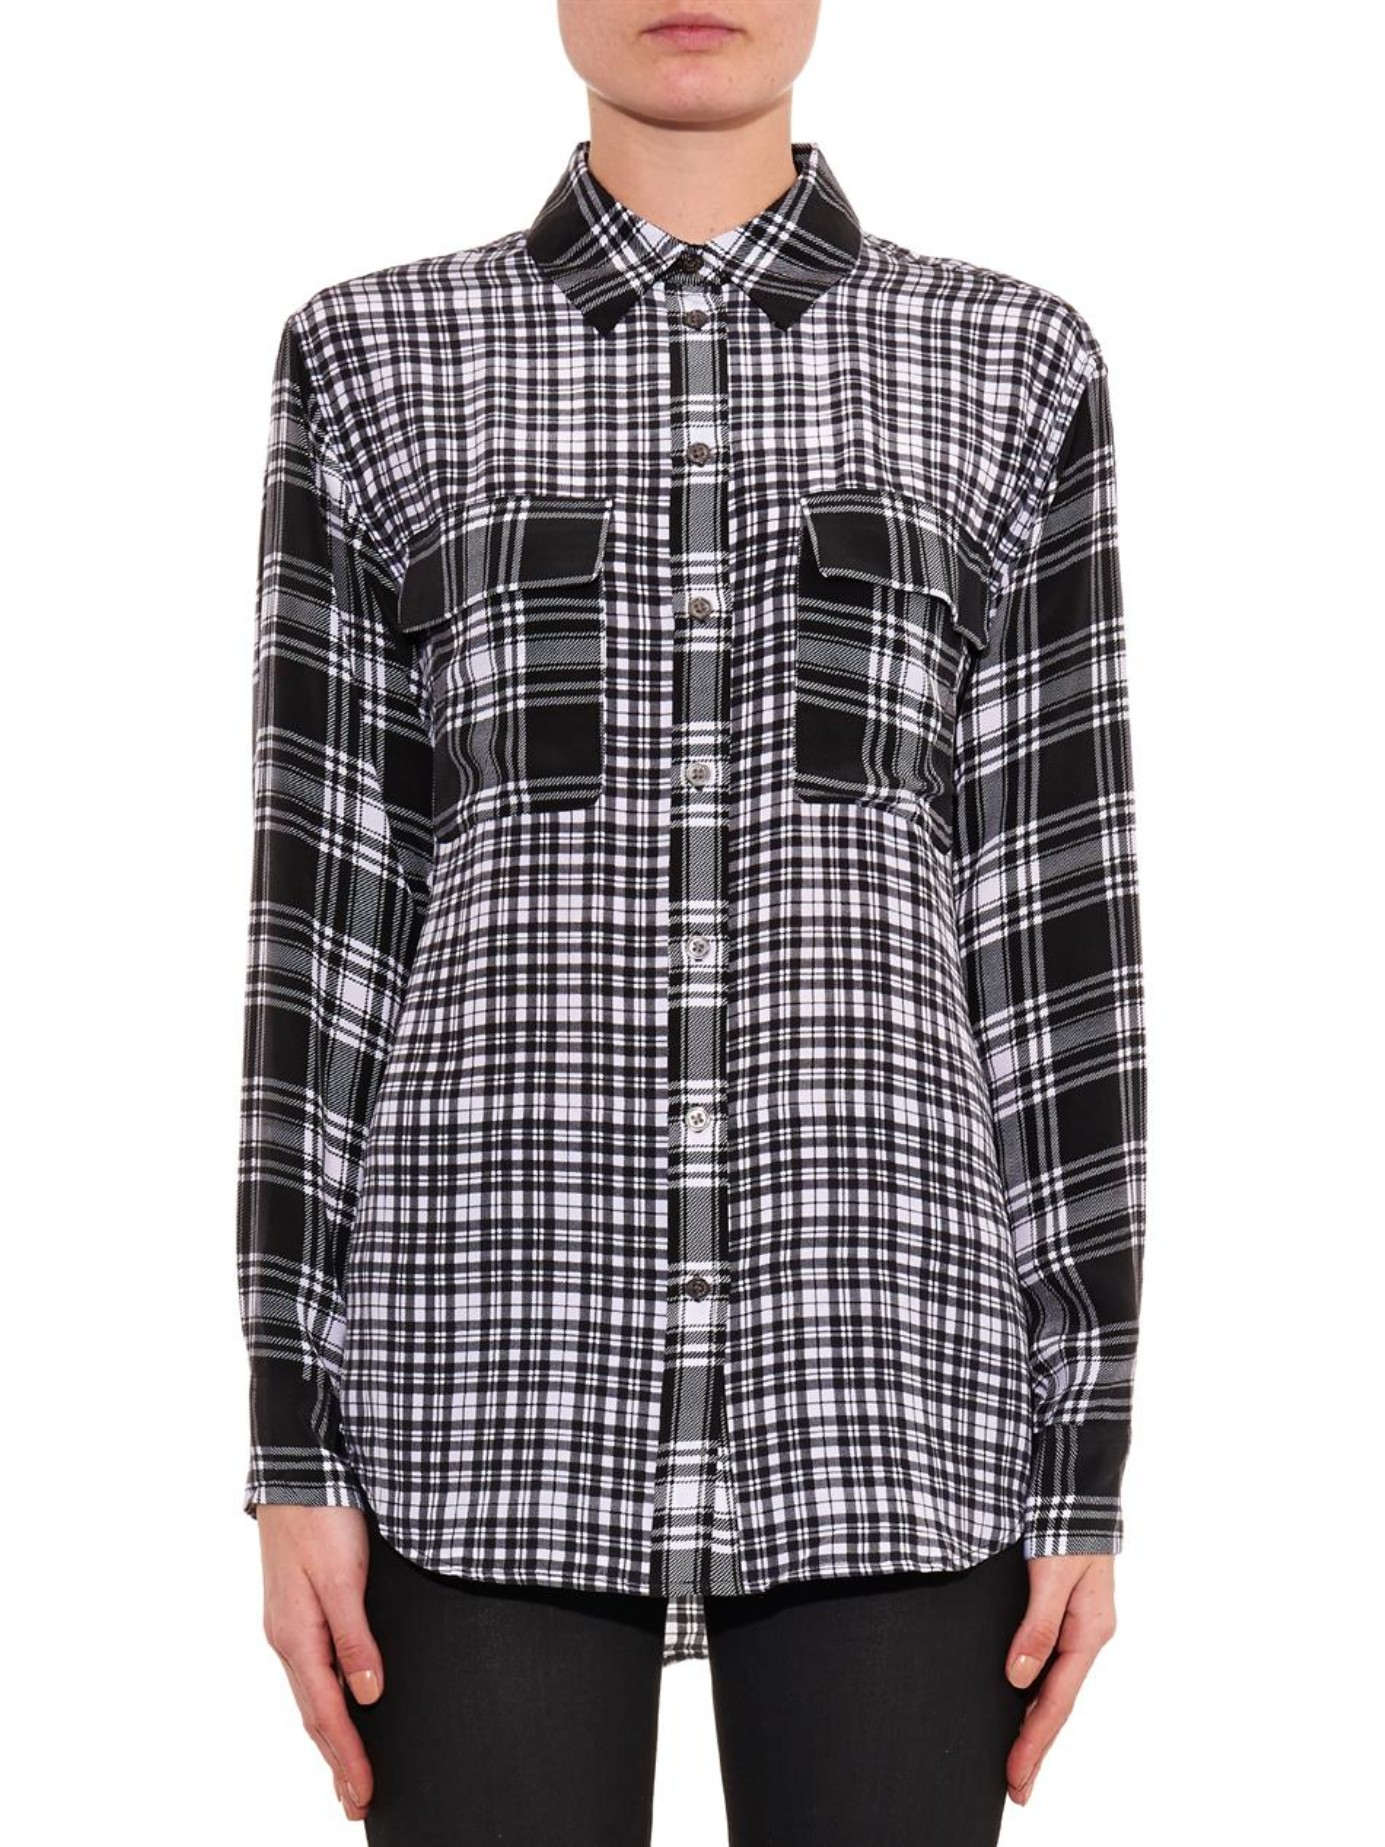 Equipment Signature Contrast Check Shirt In Black Lyst